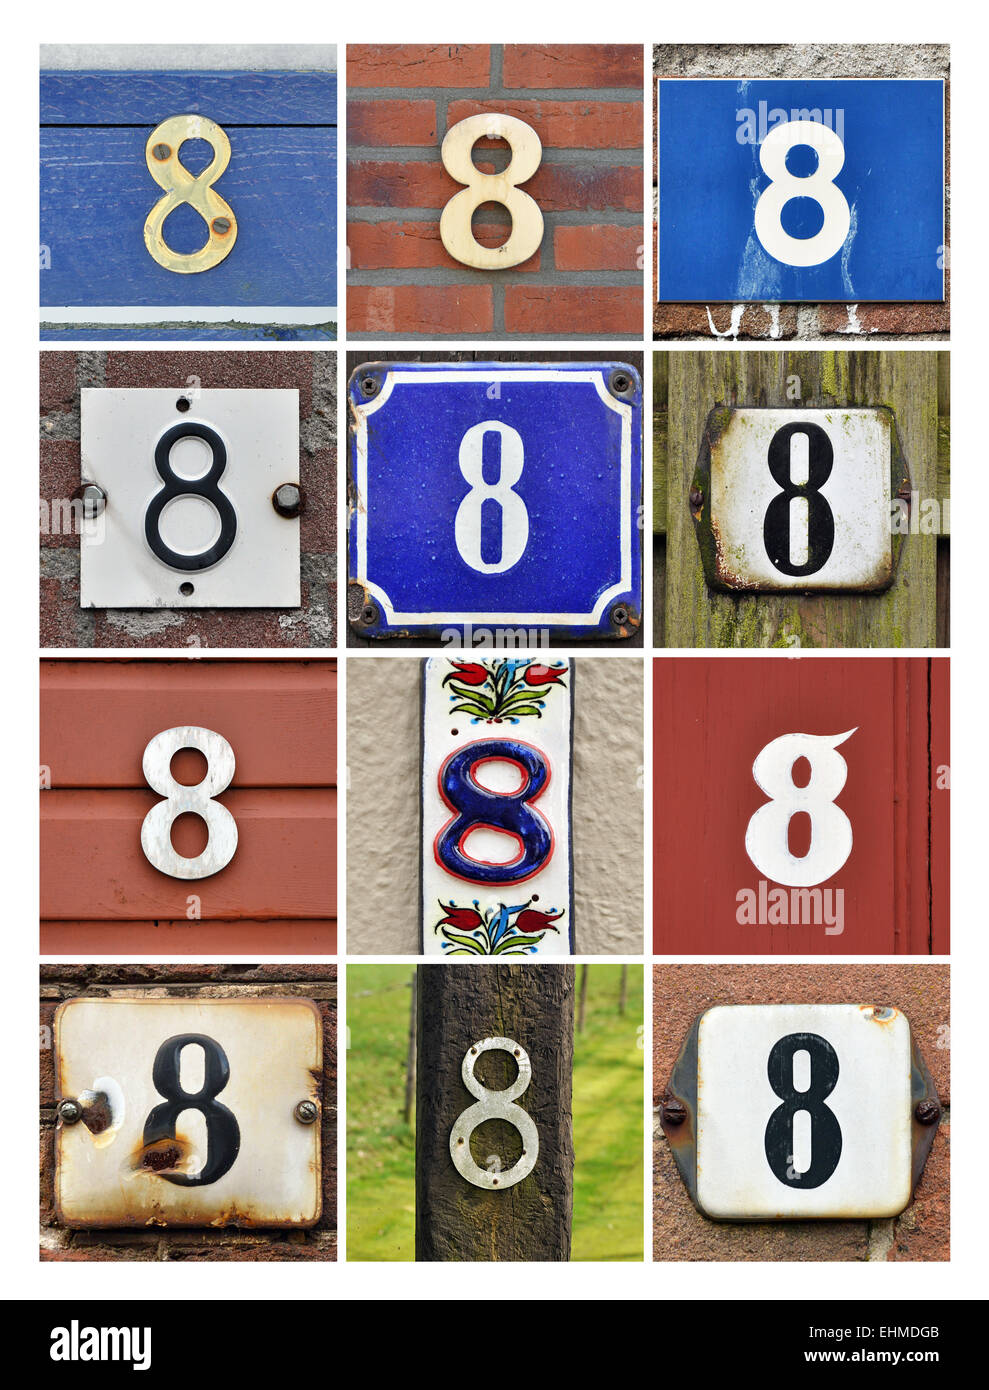 Number 8 - Collage of House Numbers Eight - Stock Image